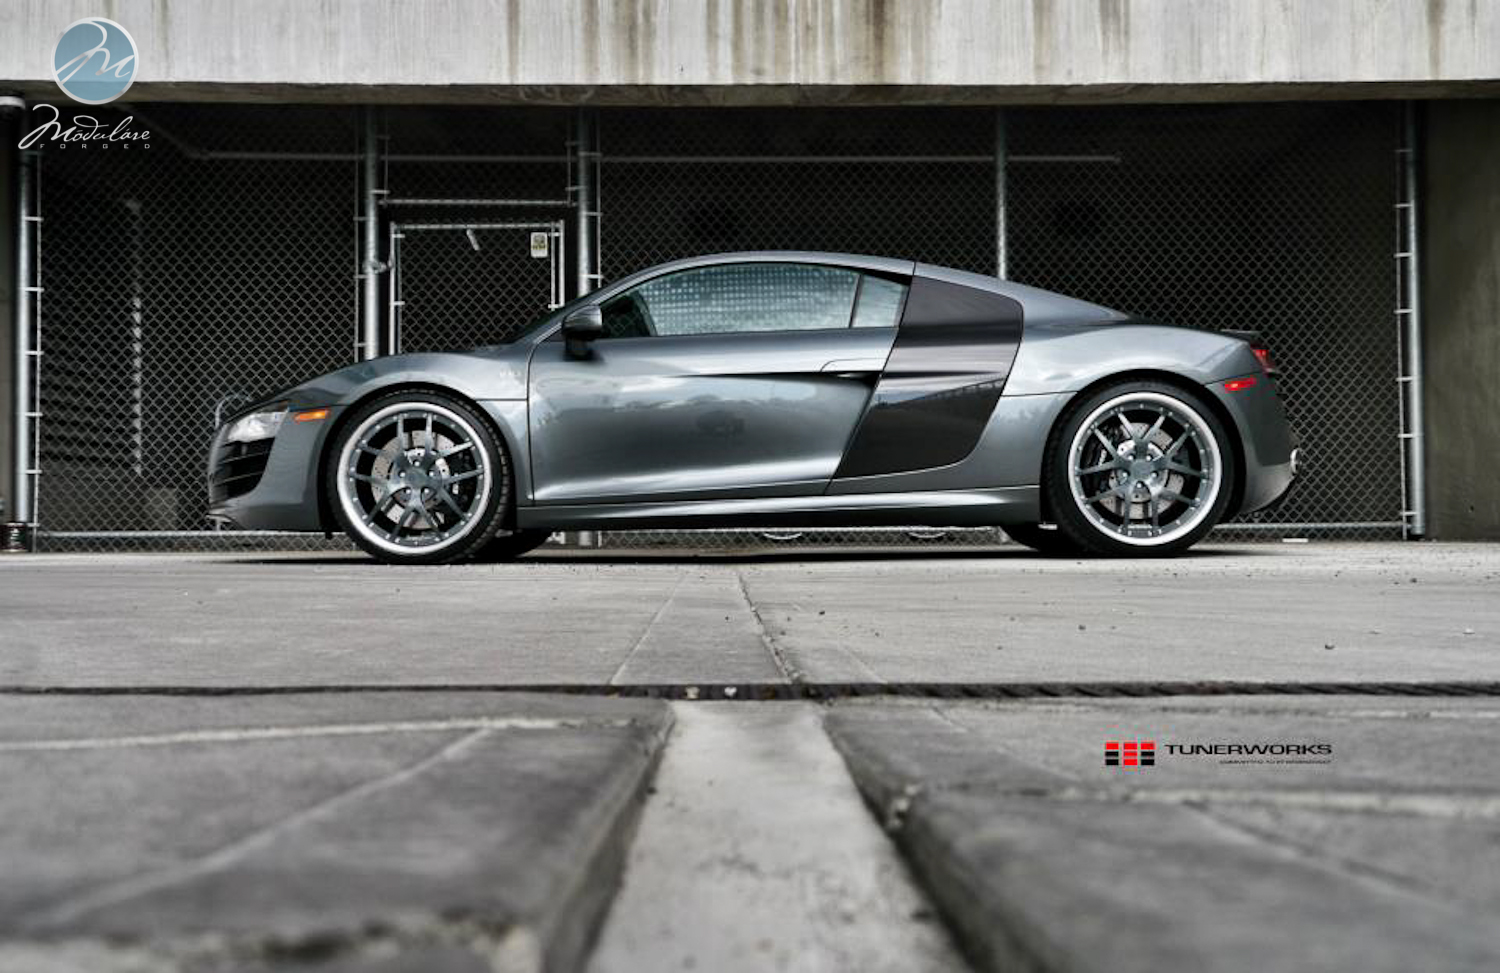 MPPSOCIETY Modified Cars Audi R8 Modulare Wheels 02